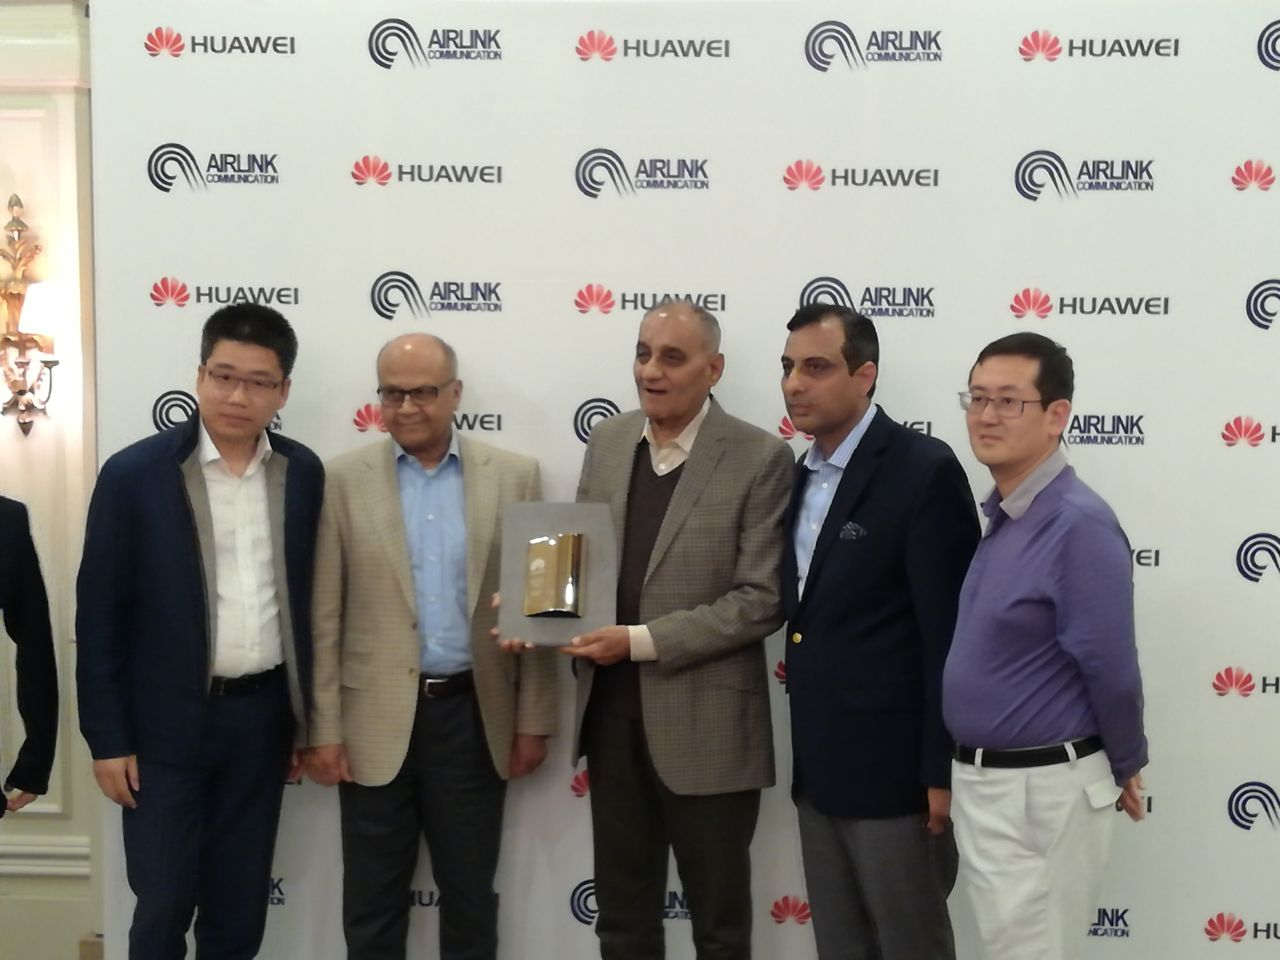 Huawei a global leading technology brand has recently awarded Airlink the Best Cooperation Award at Huawei's Core Partner Convention Awards 2017.